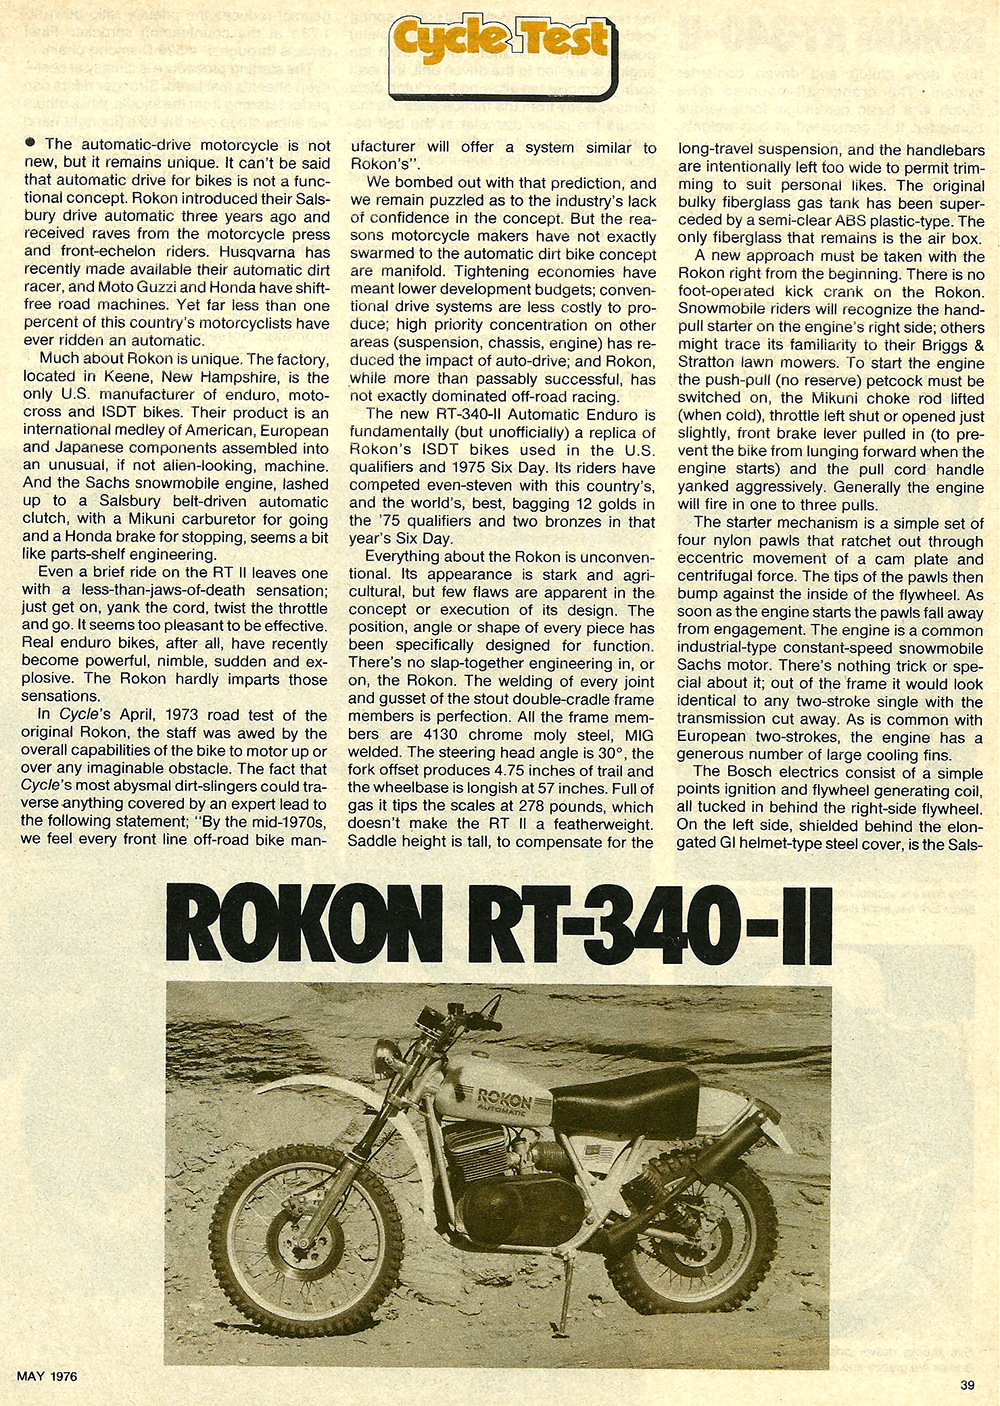 1976 Rokon RT-340 II road test 1.jpg